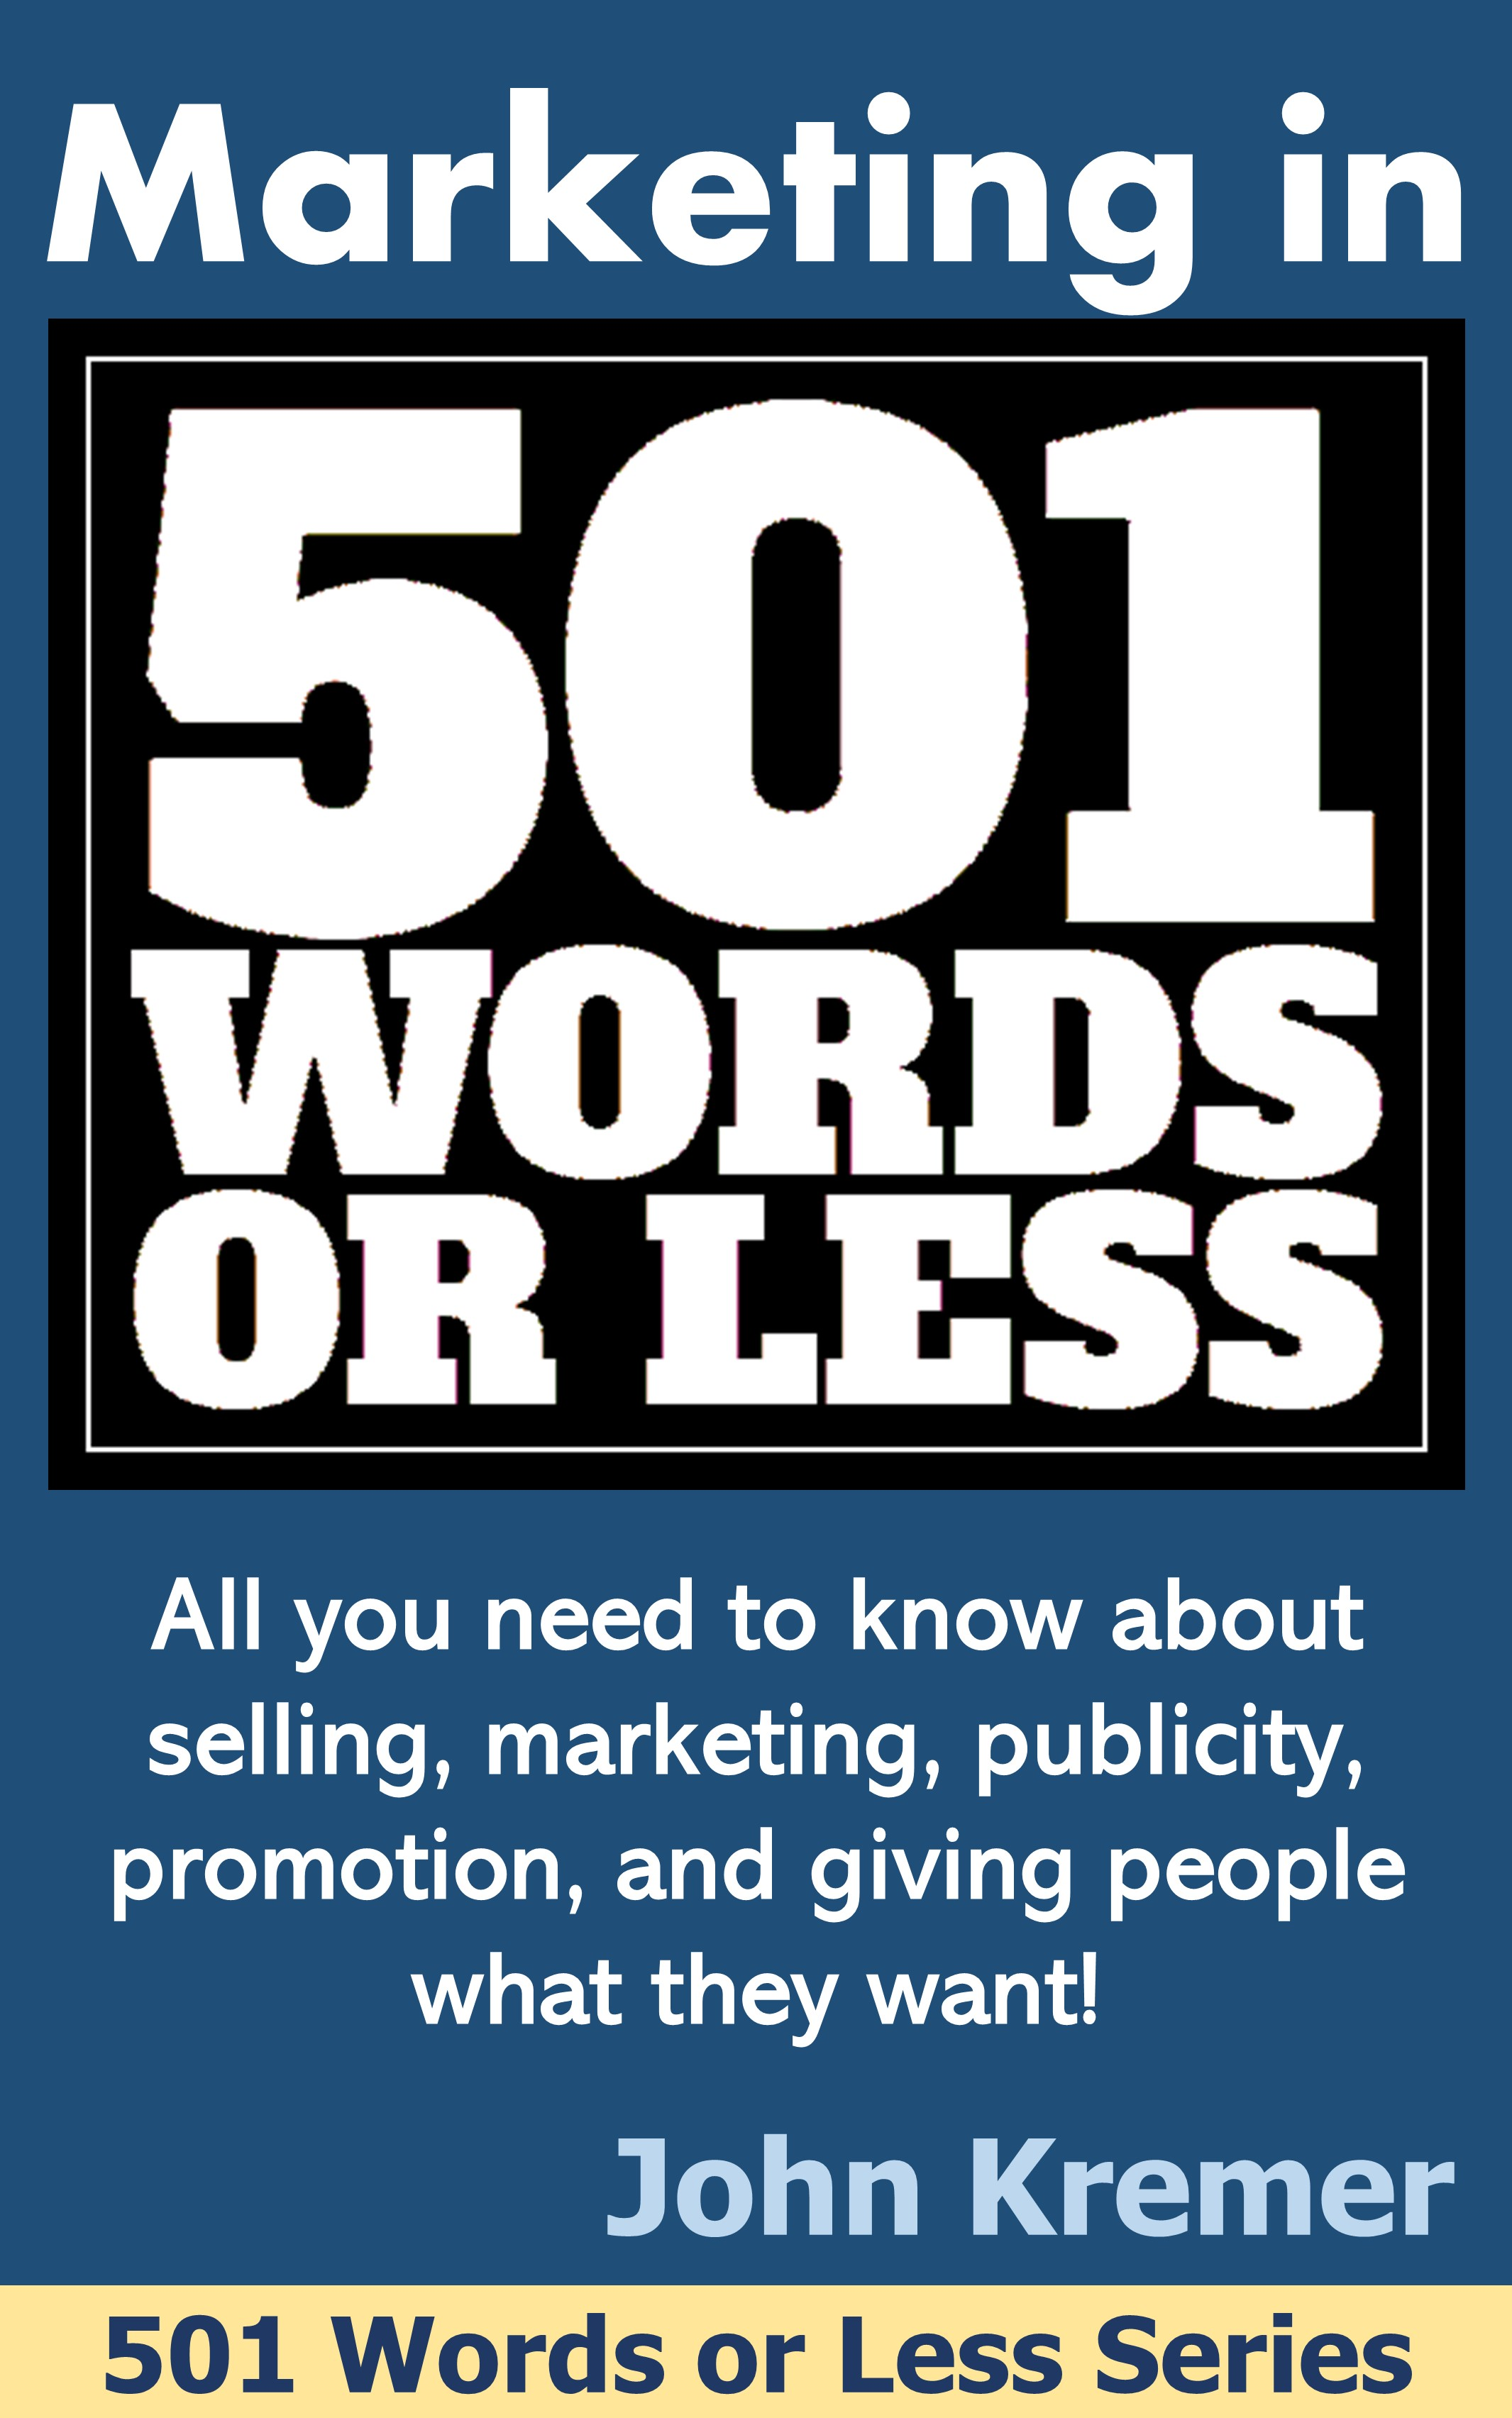 Marketing in 501 Words or Less by John Kremer